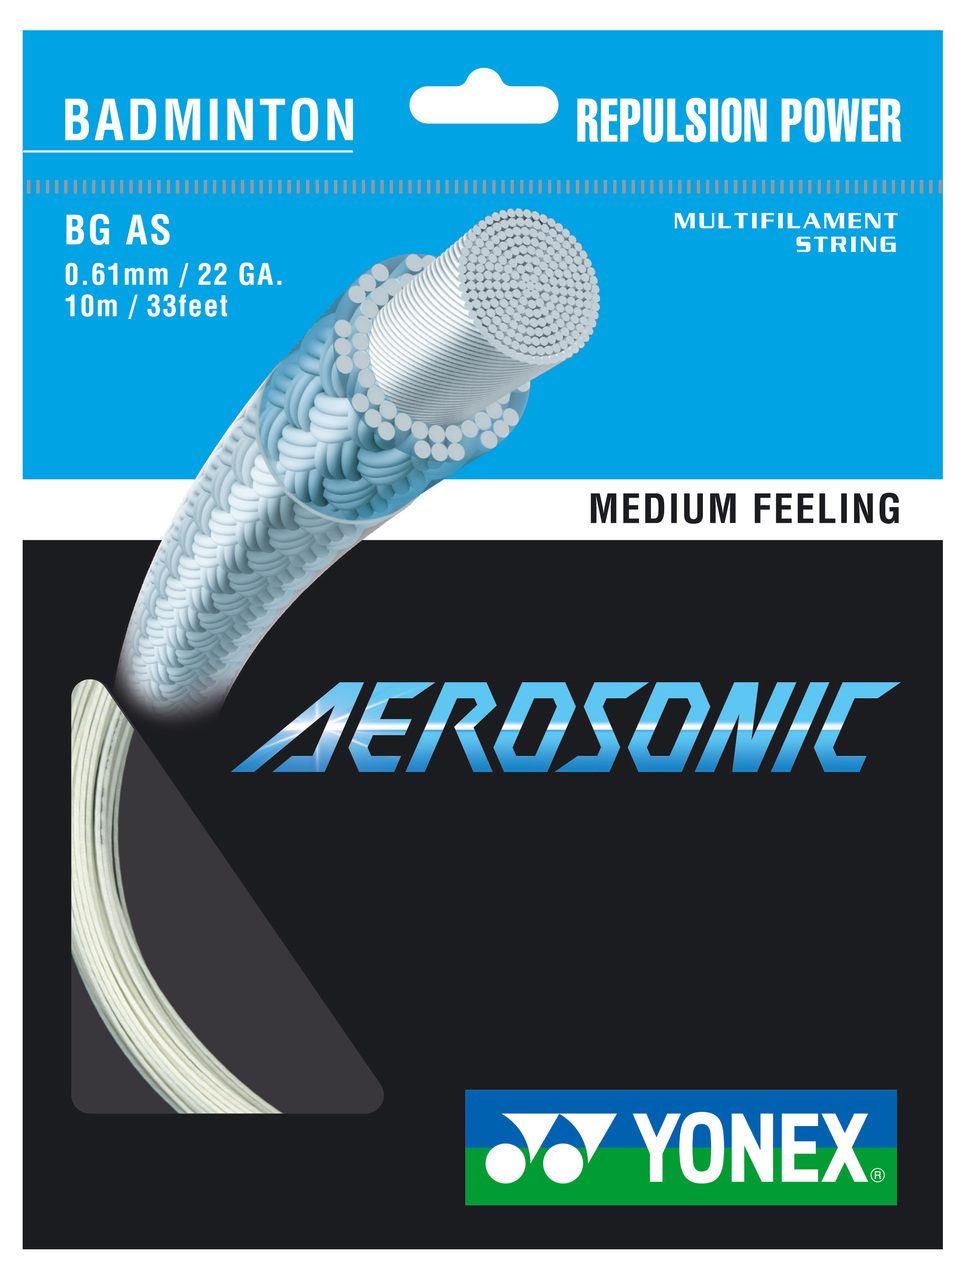 yonex_aerosonic_0_61mm_badminton_set__76789.1455813296.1280.1280